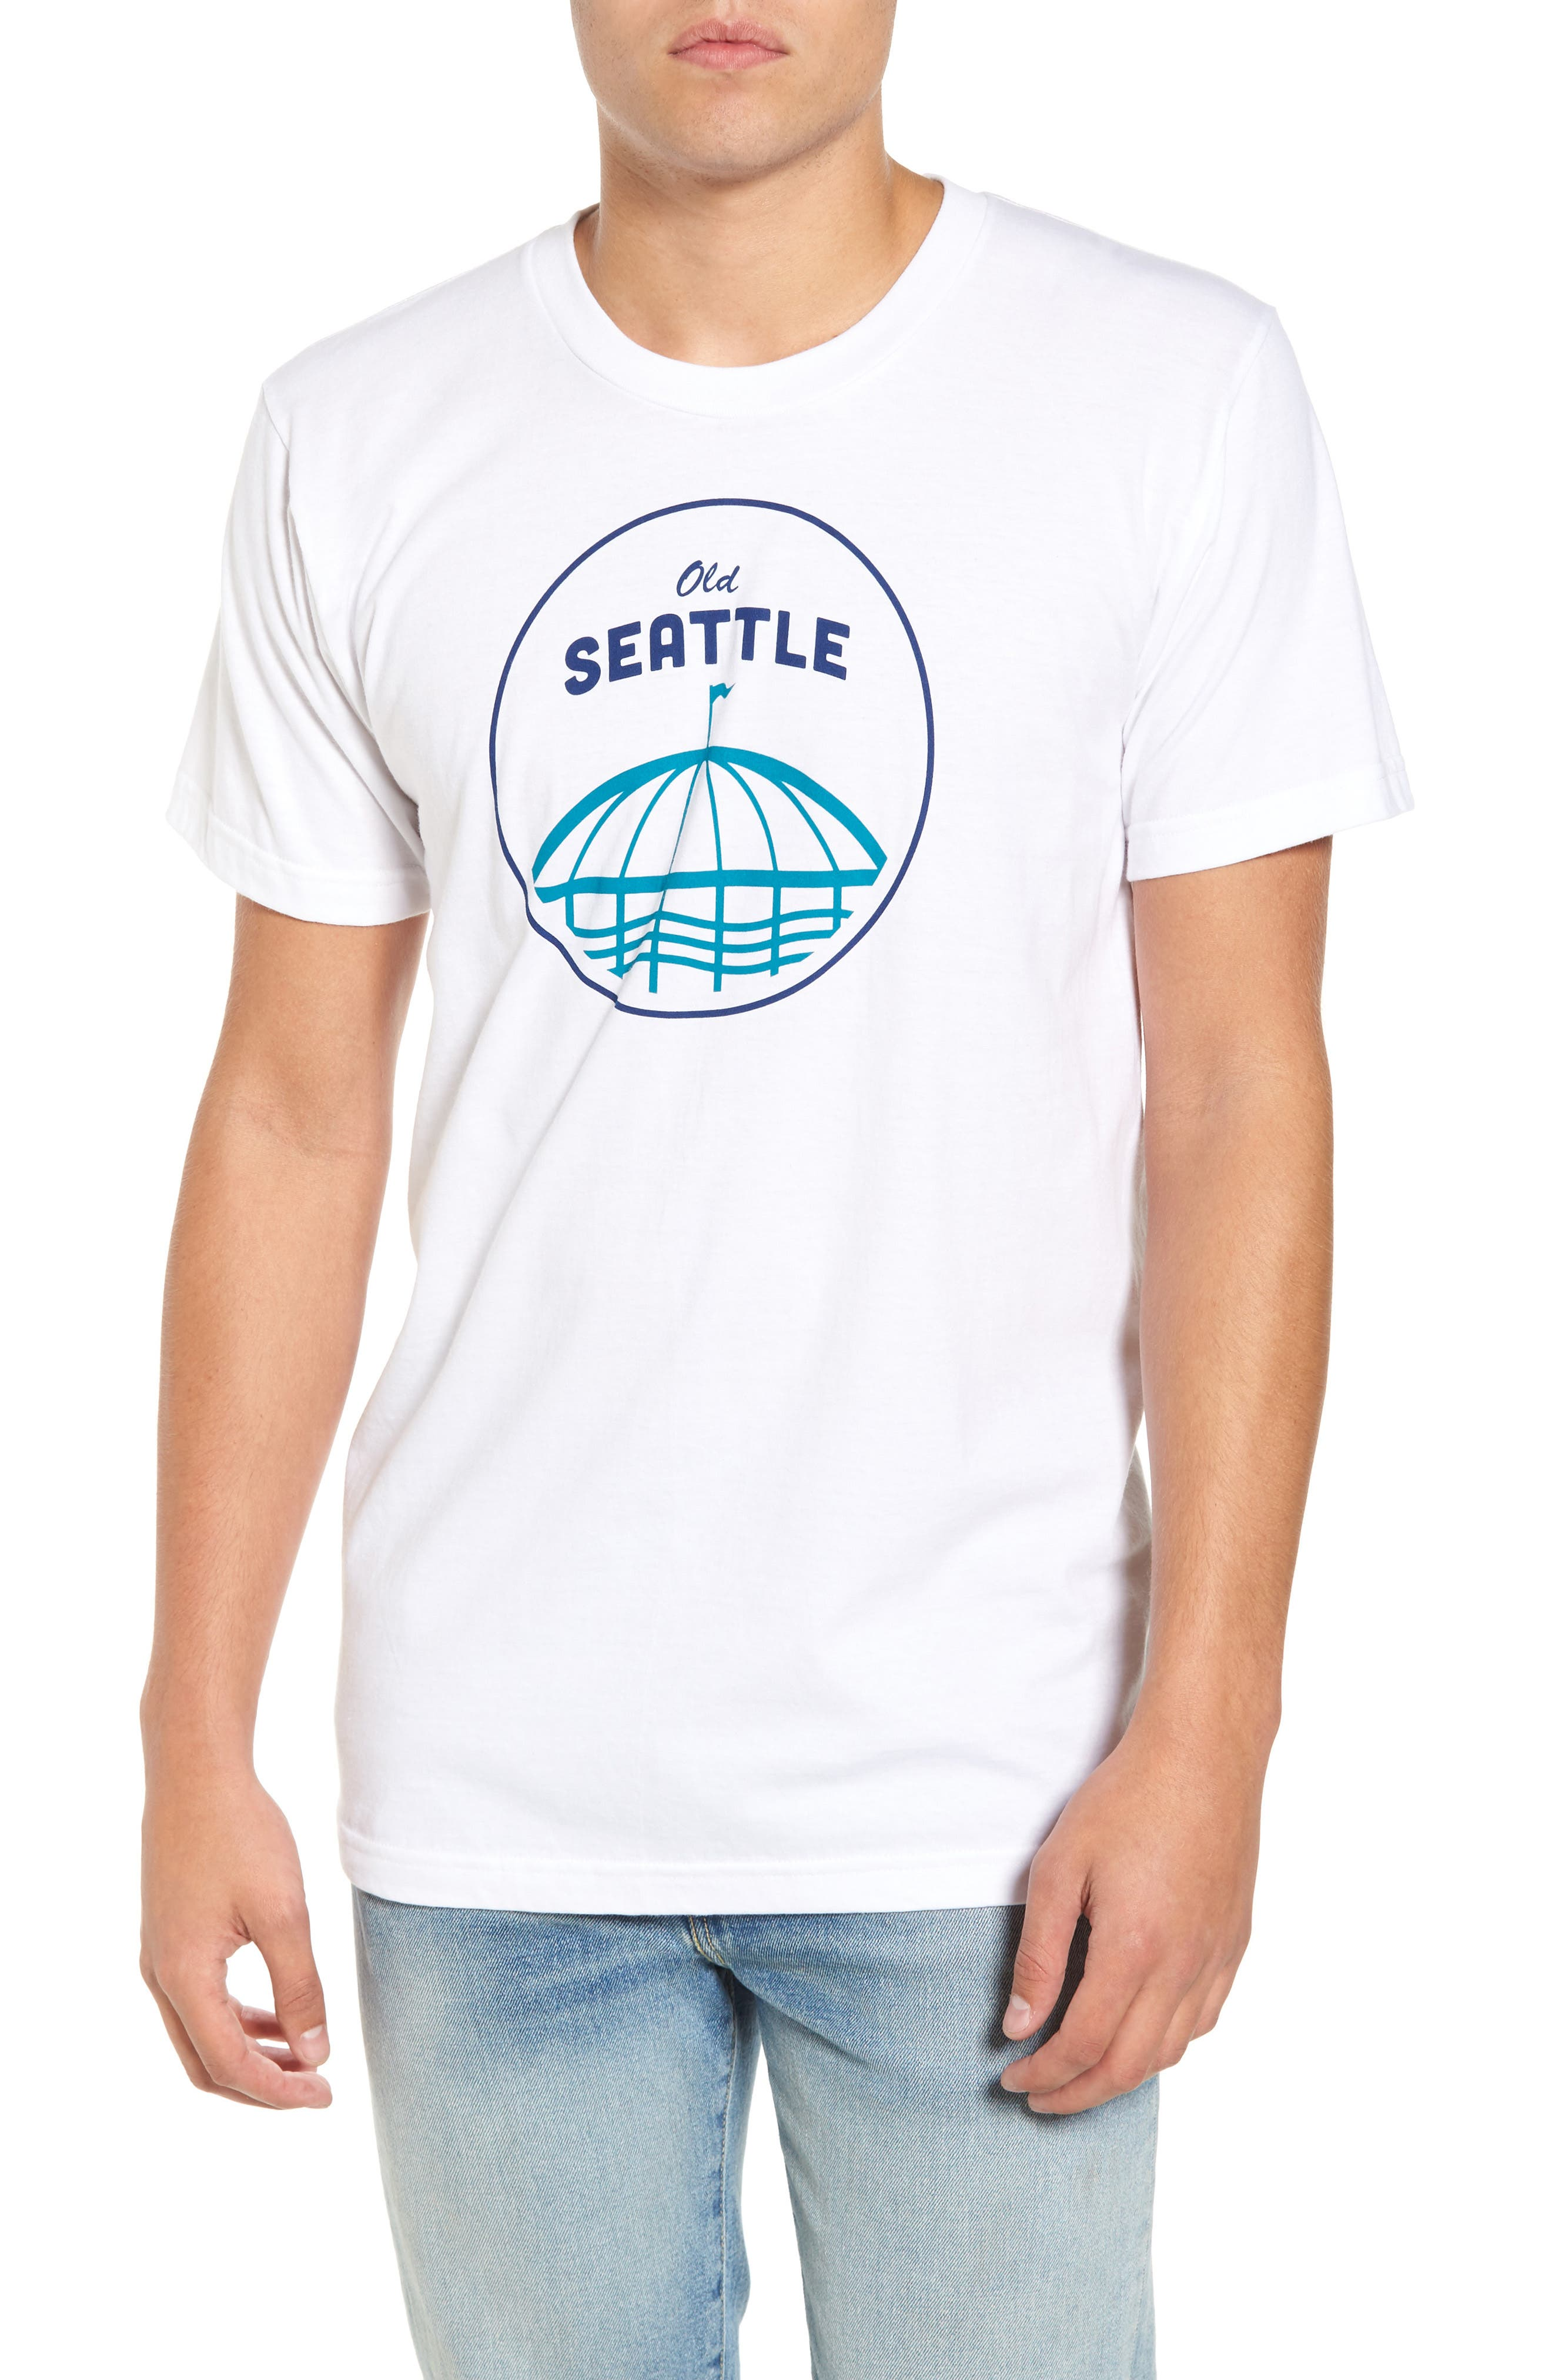 Casual Industrees Old Seattle Graphic T-Shirt